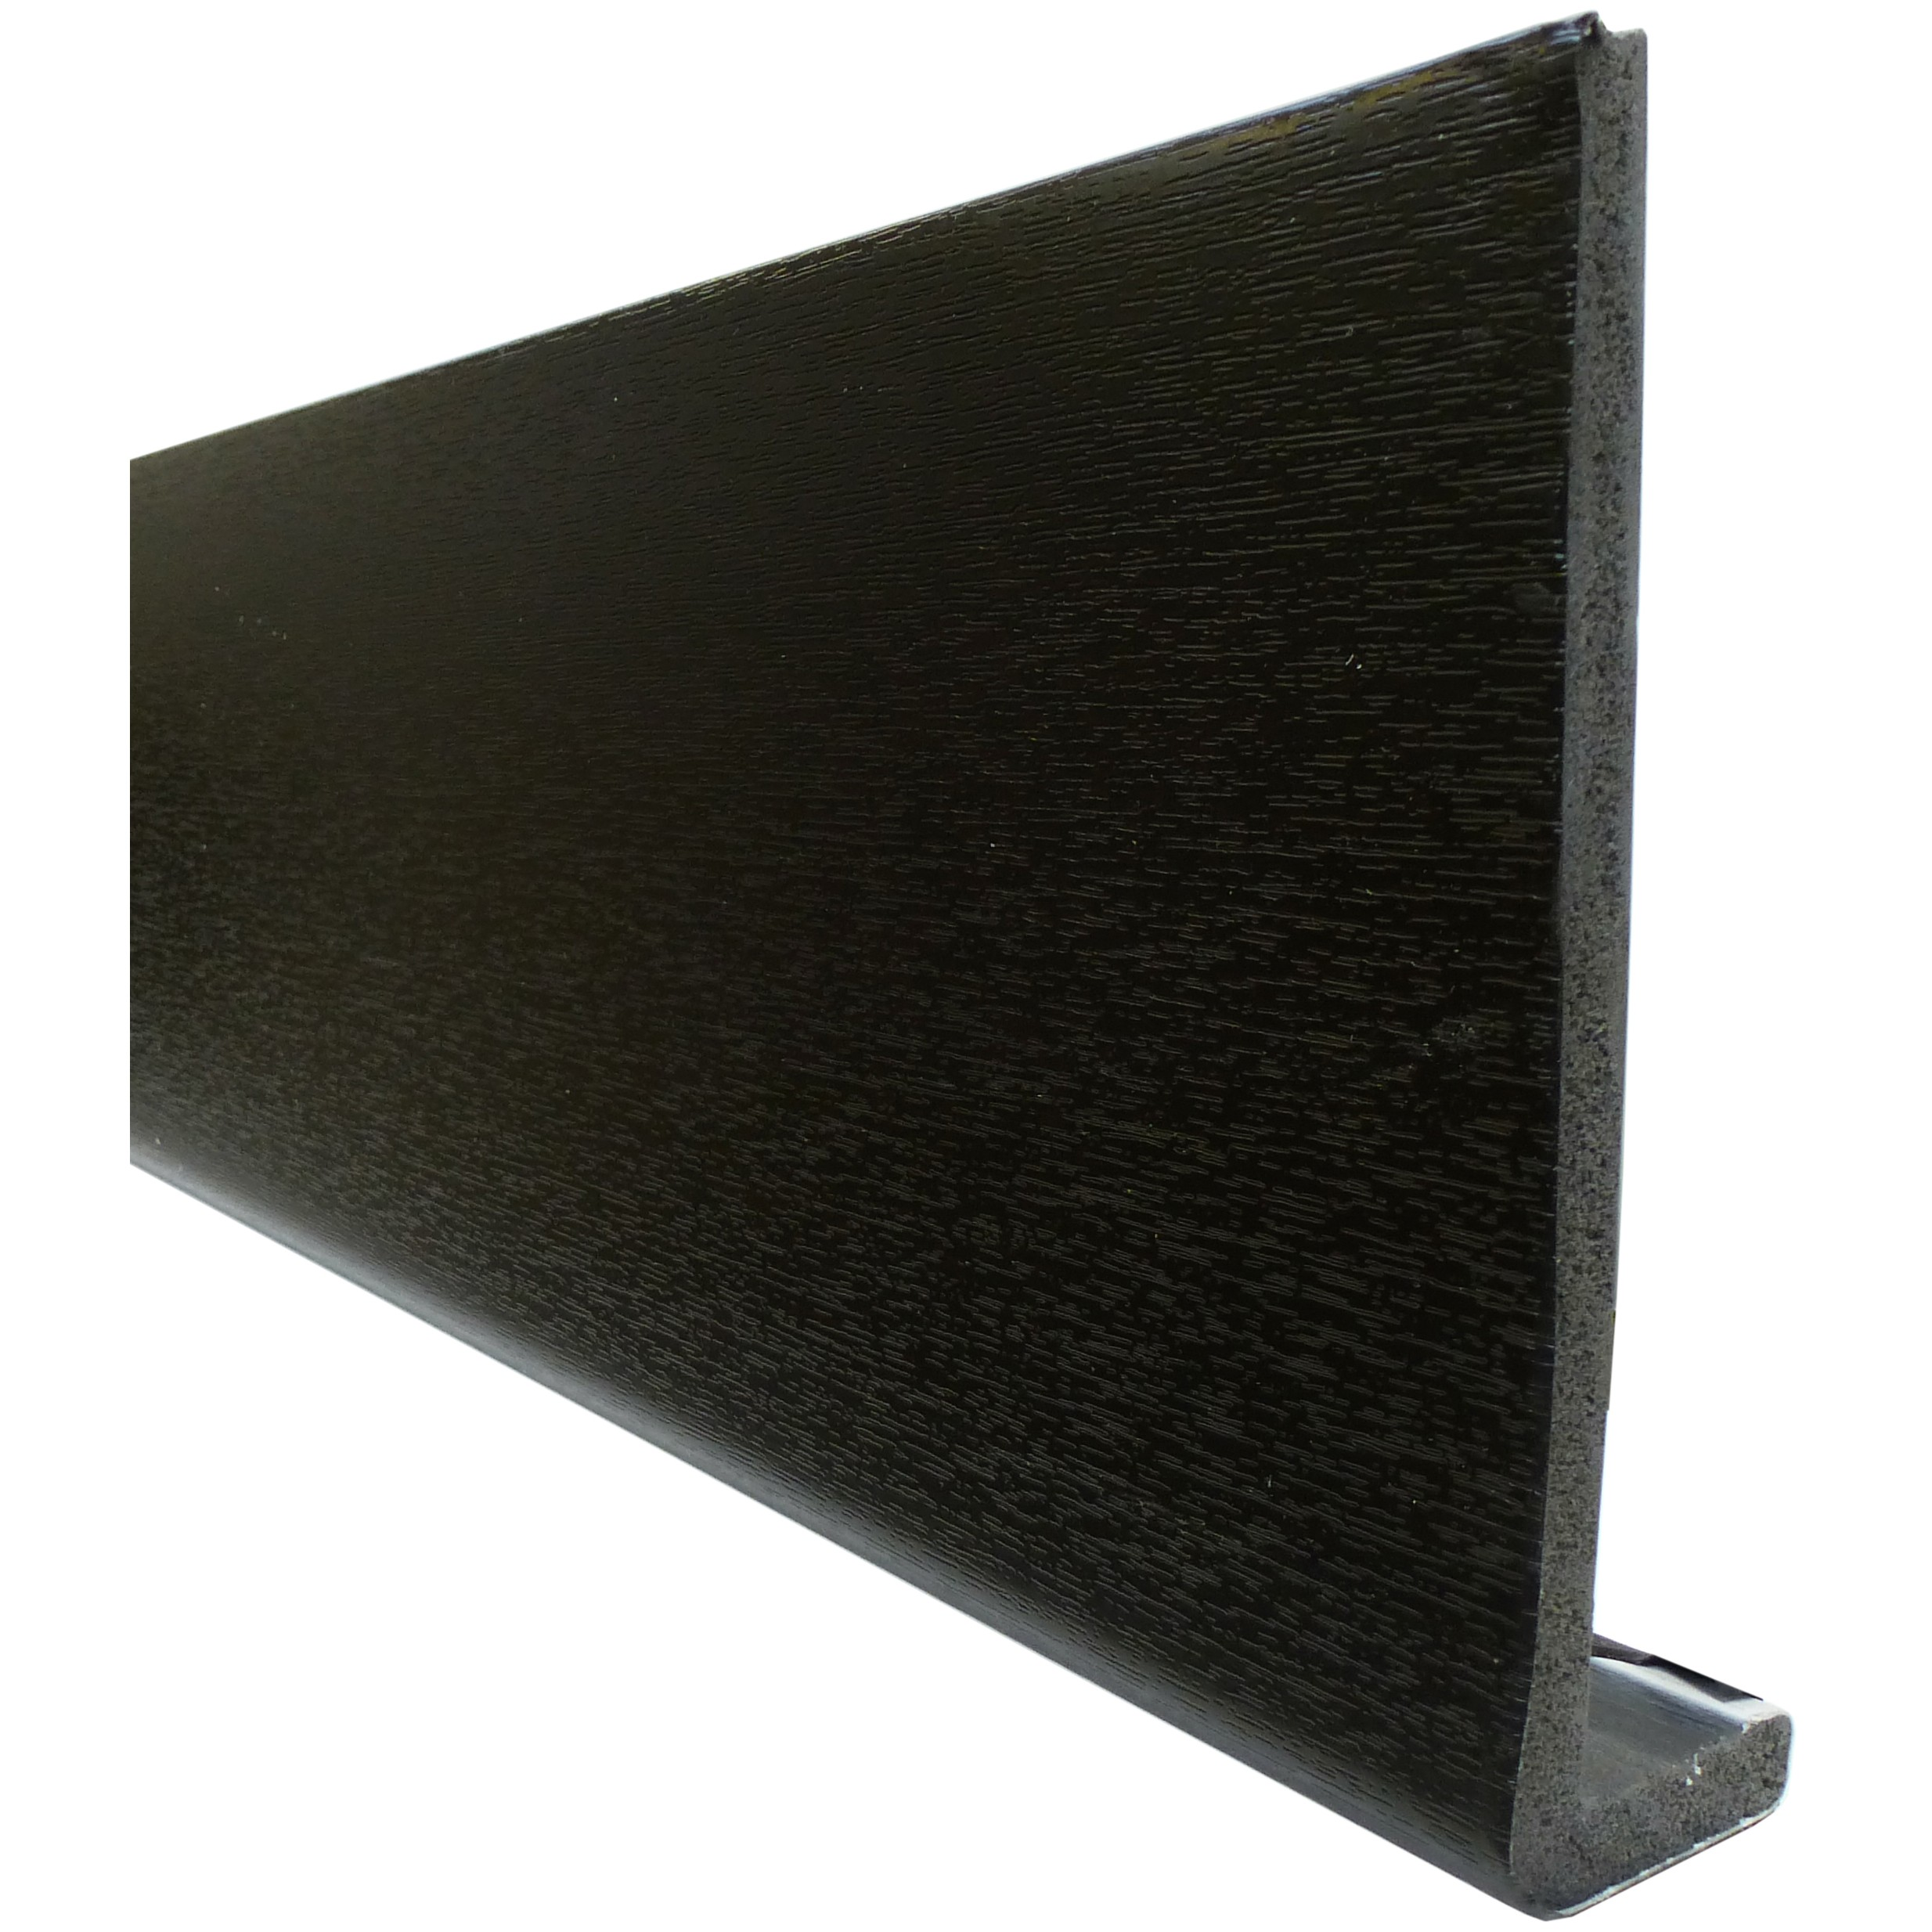 Freefoam Plain 10mm Fascia Board - Woodgrain Black Ash, 400mm, 5 metre